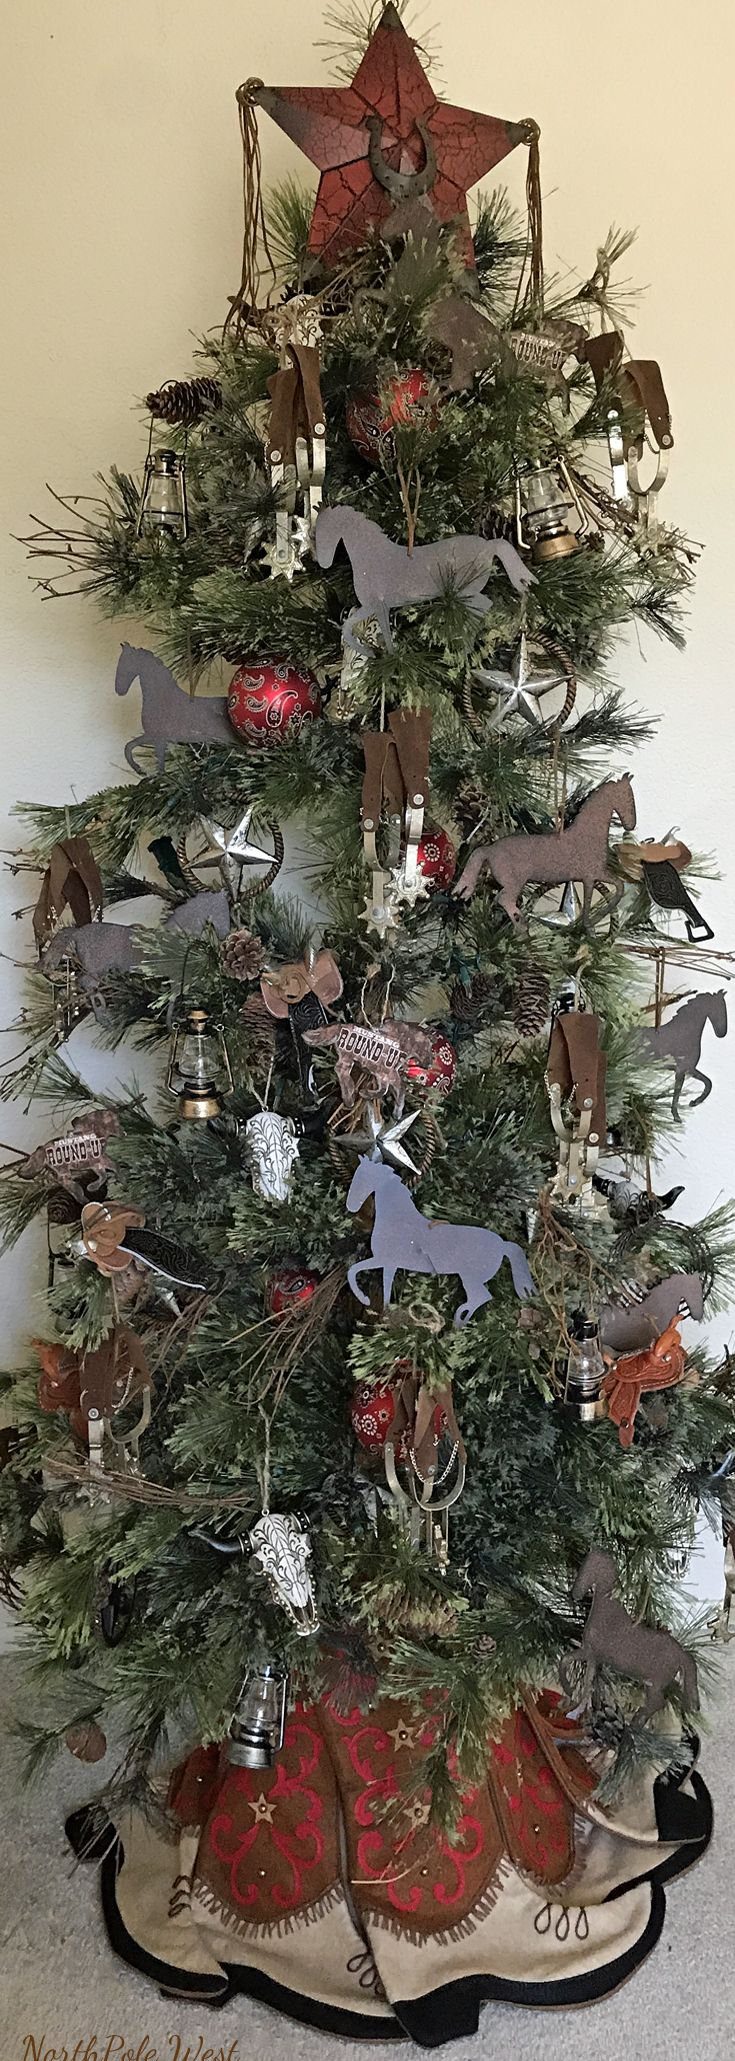 Cowboy Christmas Tree With Horse,spur,steer Skull,stars,saddles,horses